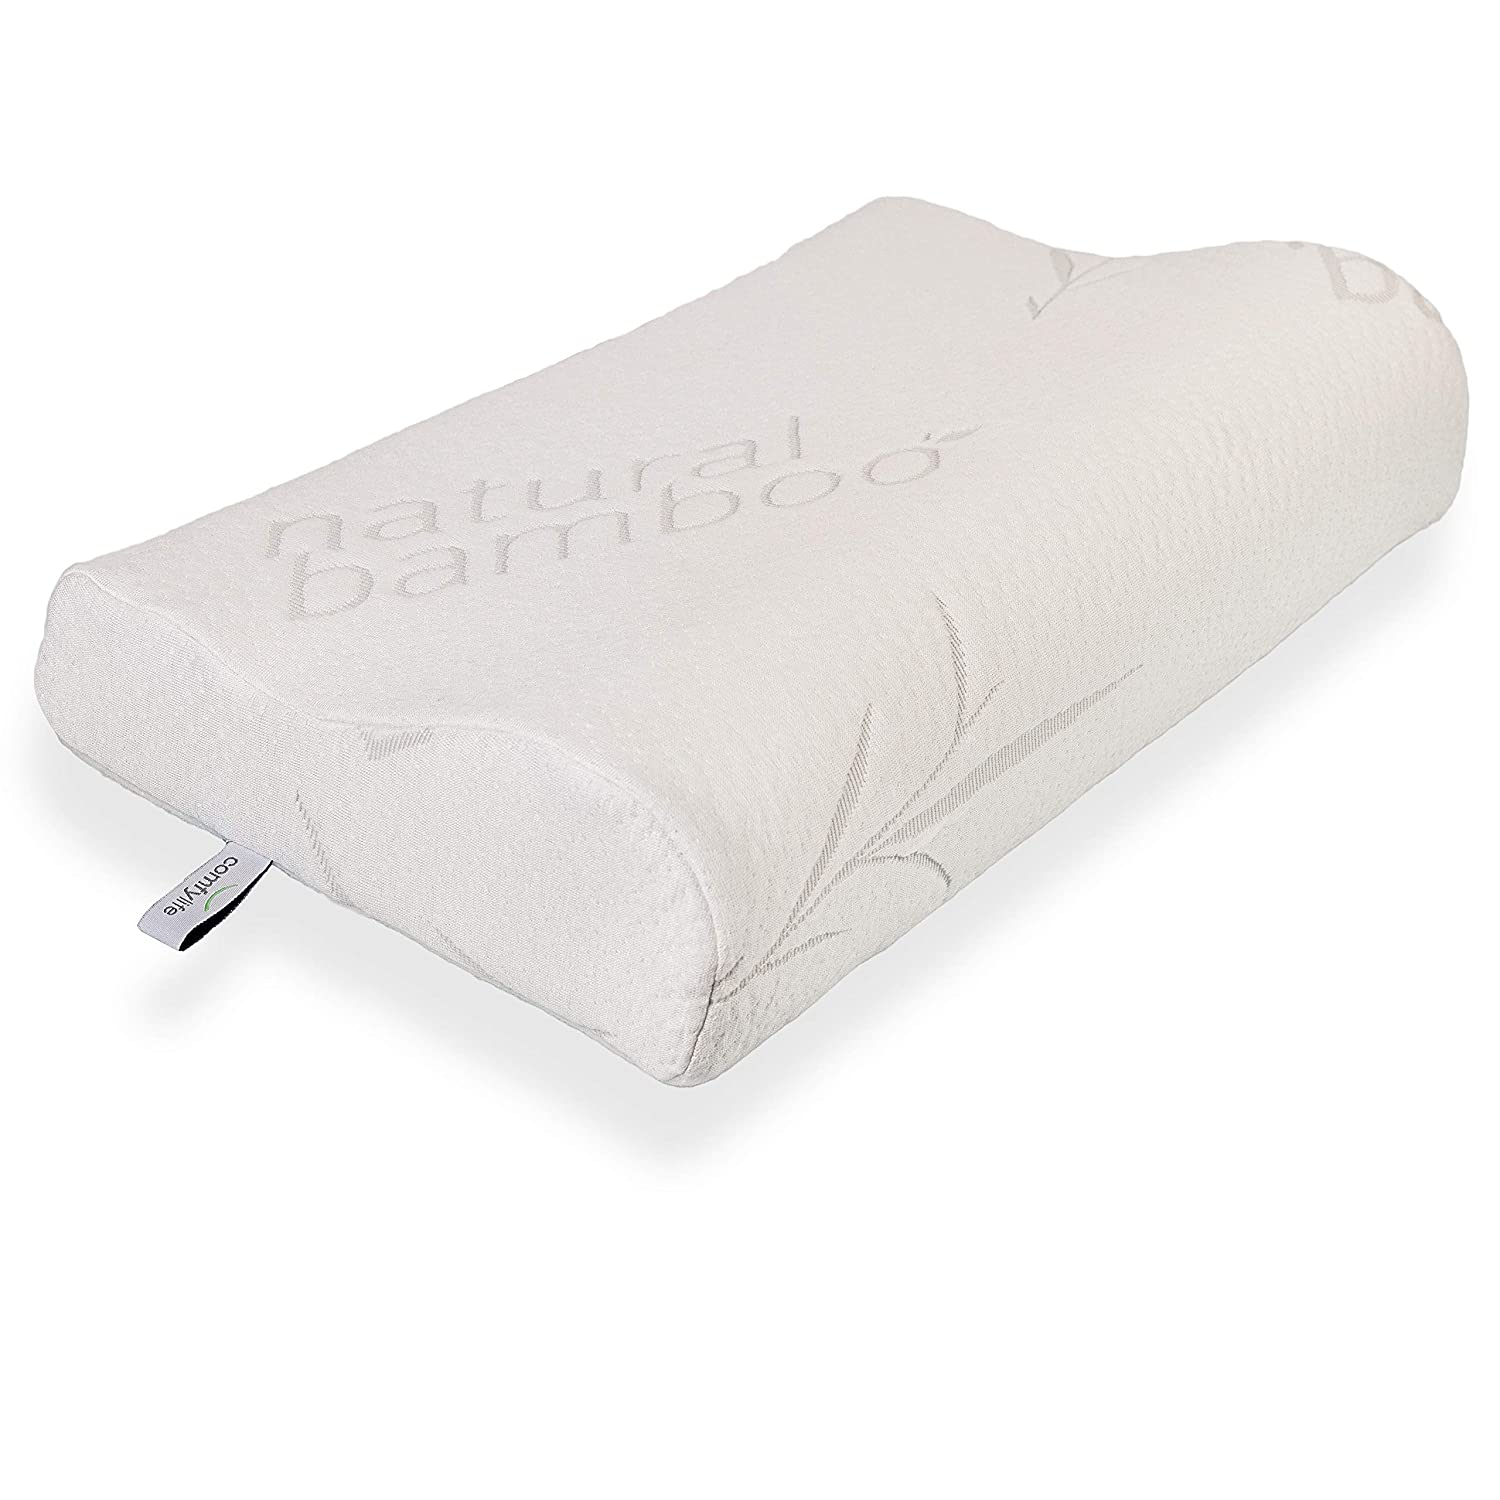 ComfyLife Hypoallergenic Bamboo Memory Foam Contour Pillow (Budget Pick)